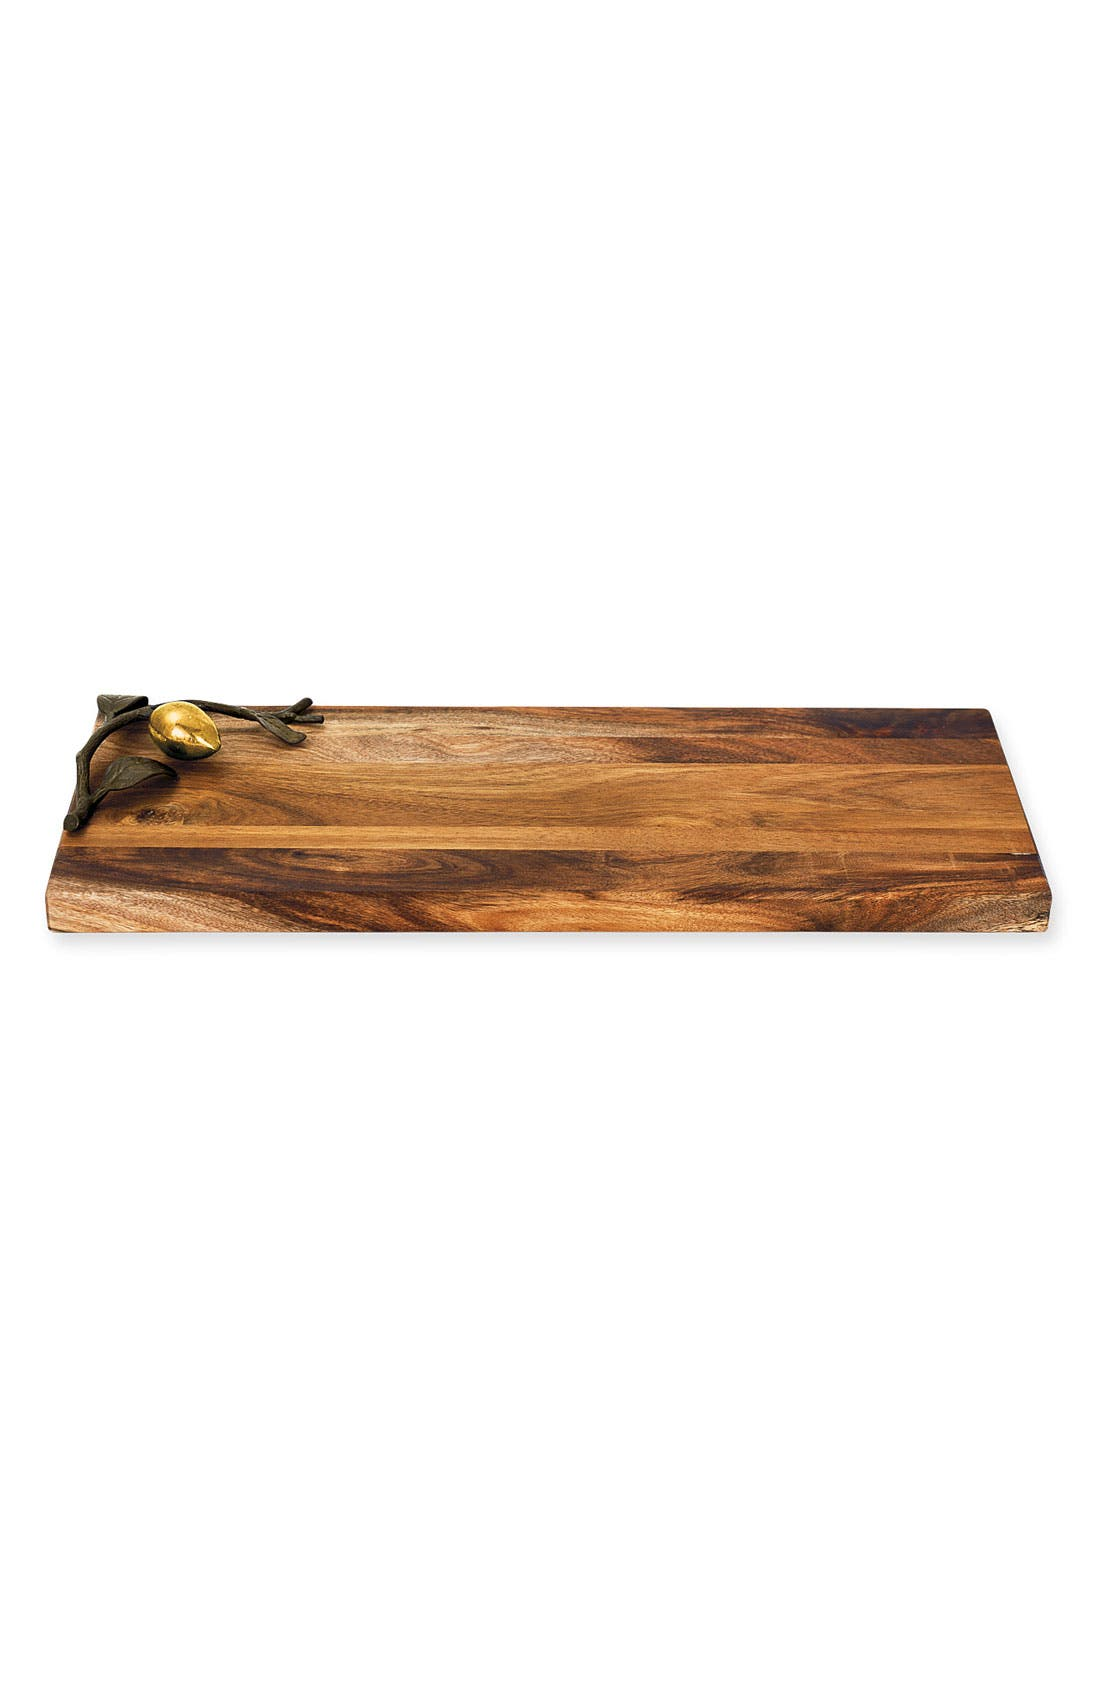 Alternate Image 1 Selected - Michael Aram 'Lemonwood' Cutting Board